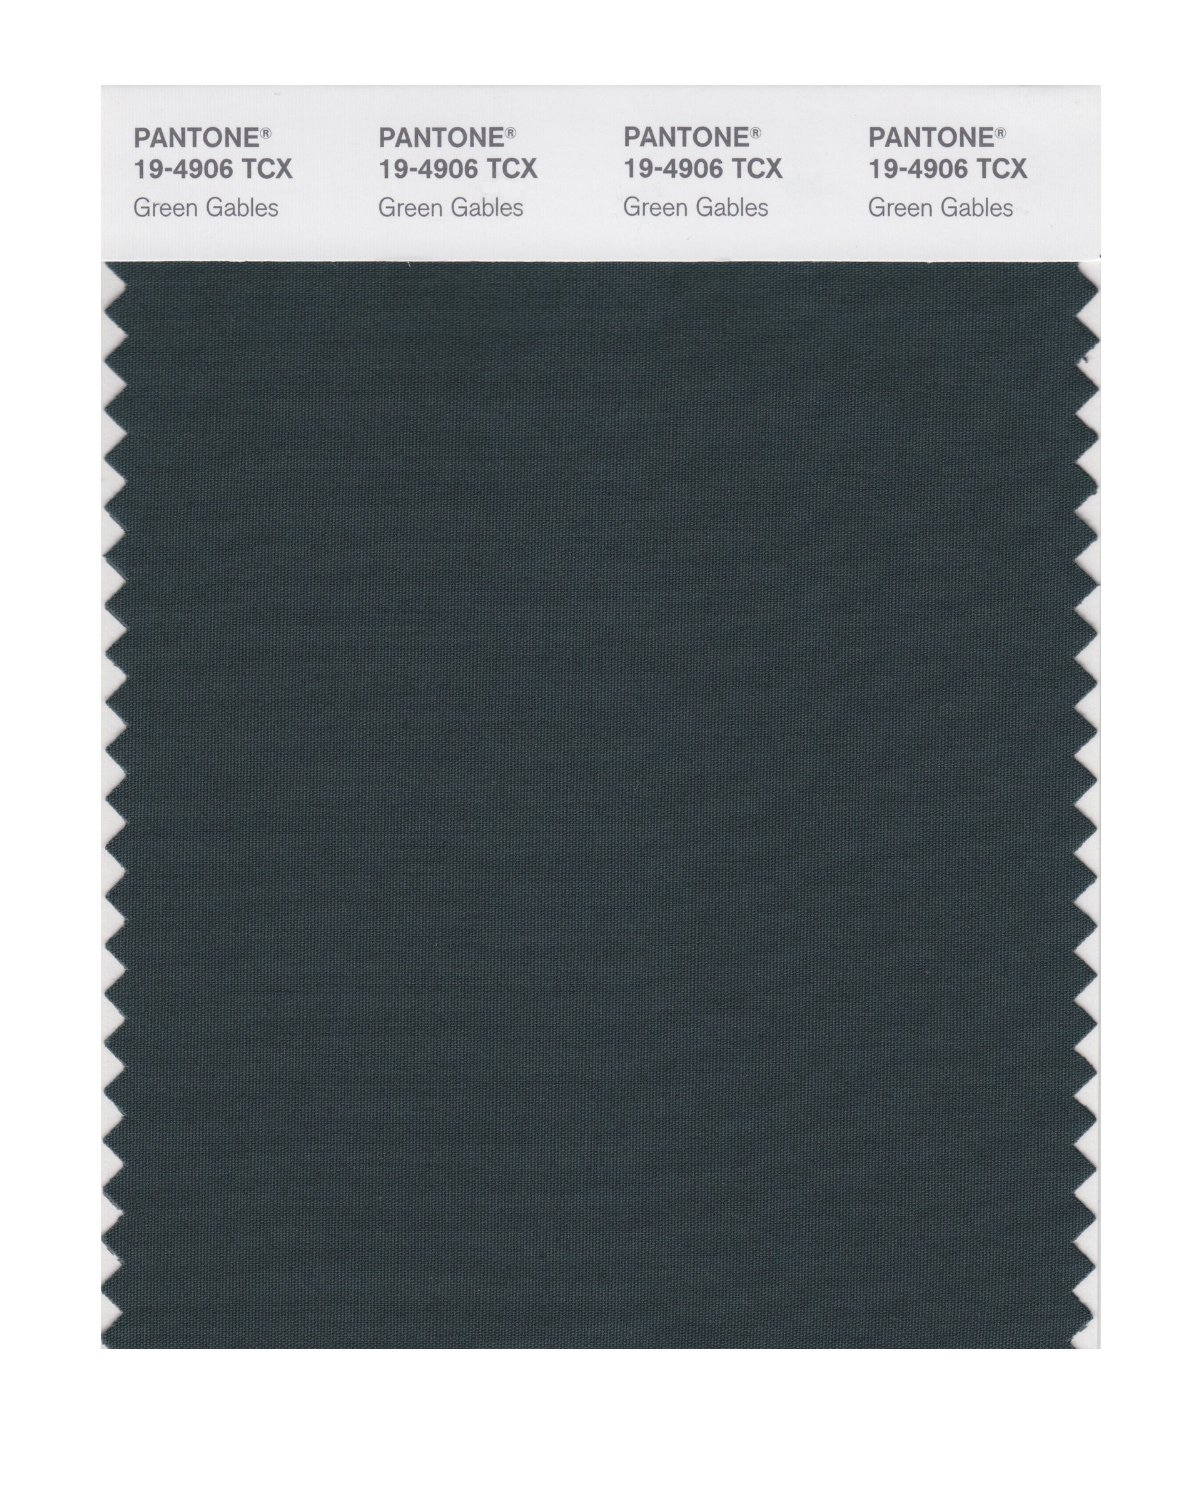 Pantone Smart Swatch 19-4906 Green Gables